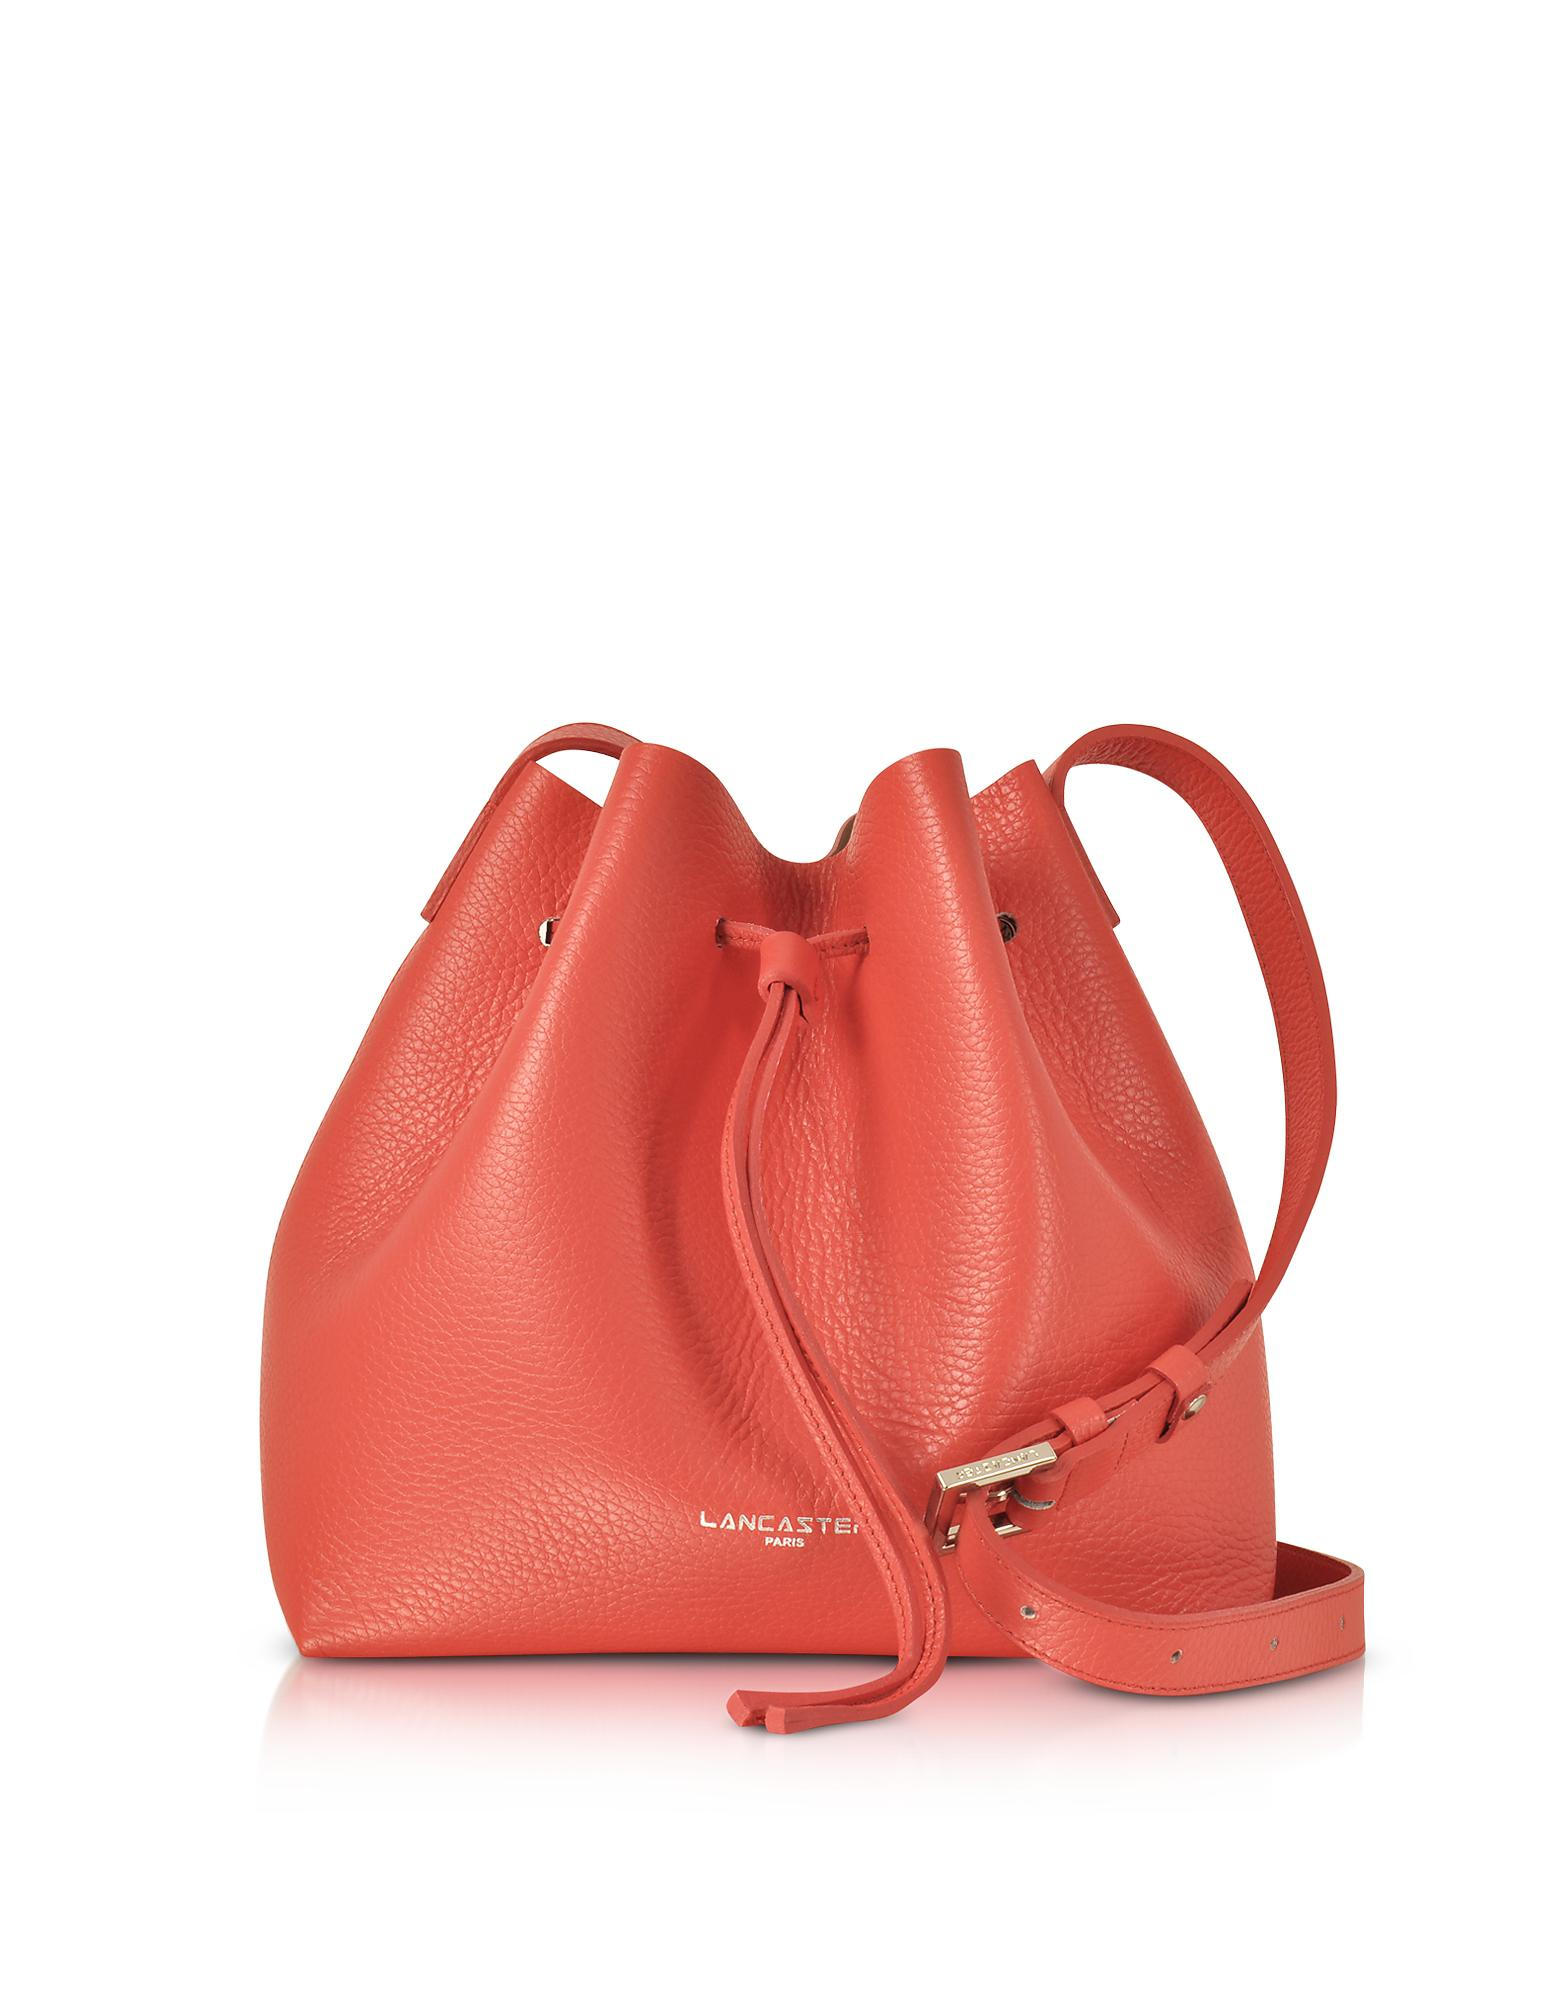 204301ee4237 Lyst - Lancaster Paris Pur   Element Foulonné Leather Bucket Bag in Red